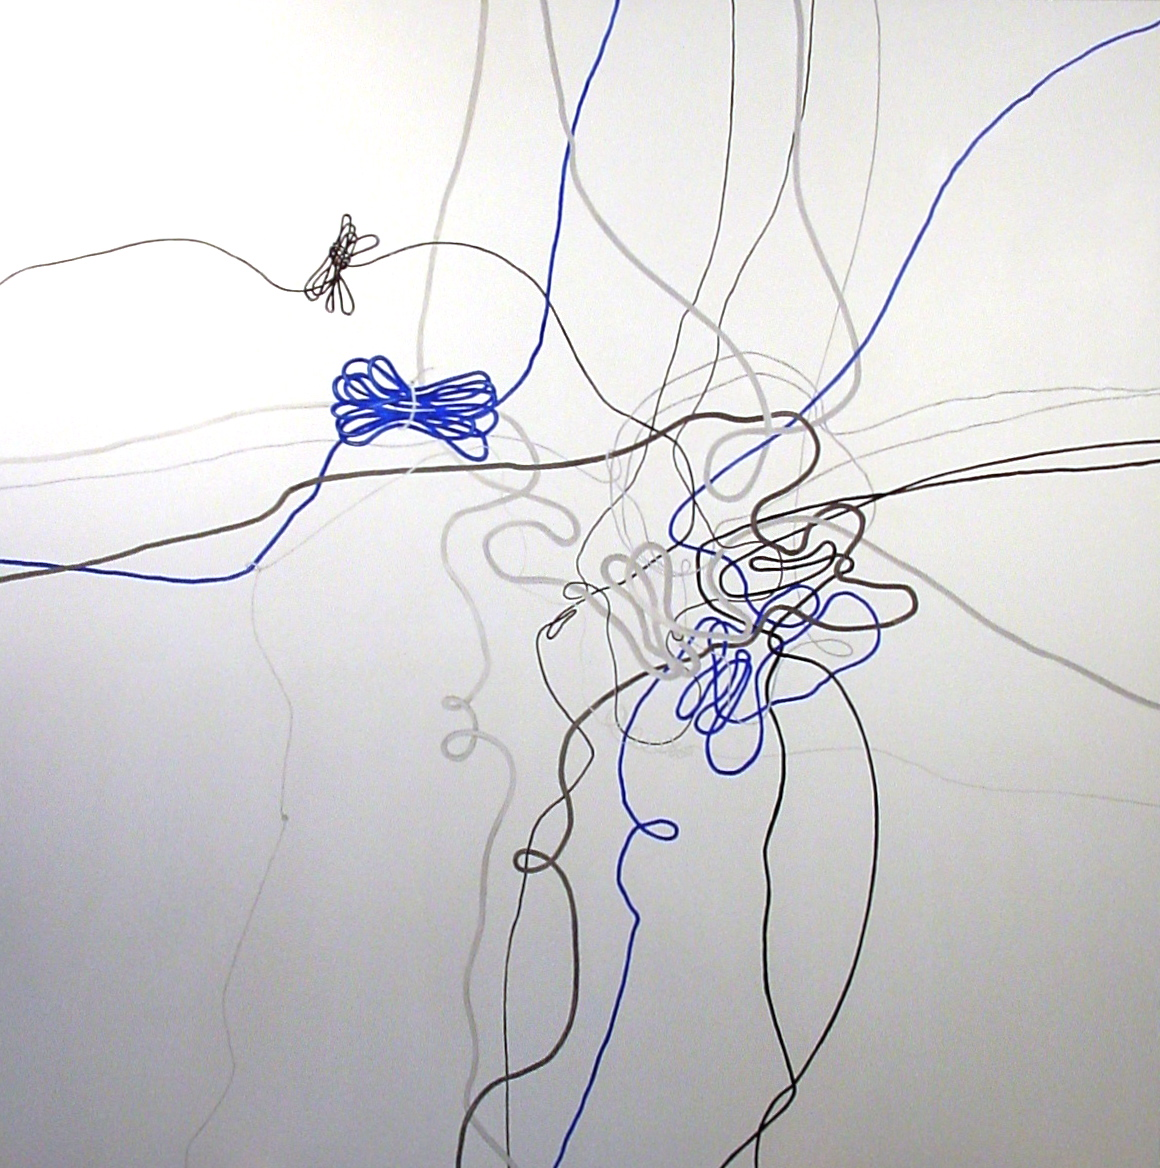 Wiring A Painting Wire Data Schema Century Mig Welder Model 20511 Jennifer Pepper Paintings And Drawings Rh Jenniferpepper Com The Back Of